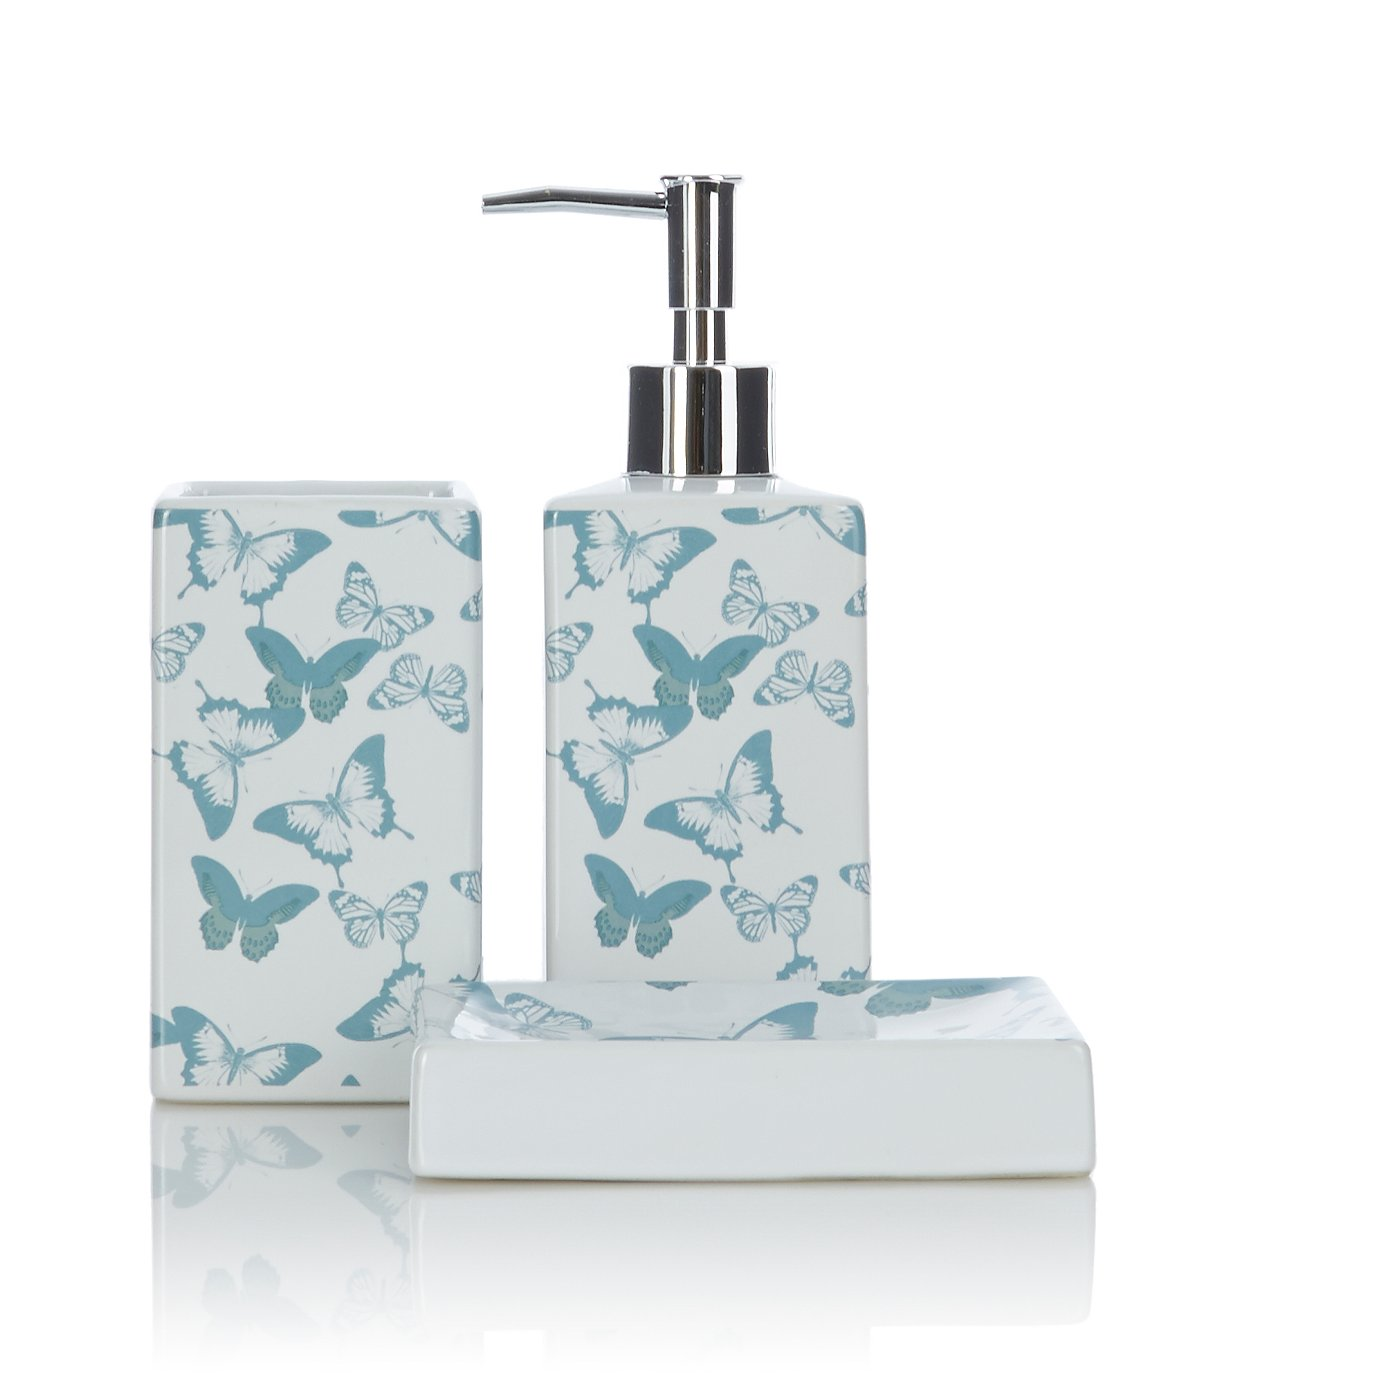 George Home Accessories - Butterfly | Bathroom Accessories | George ...